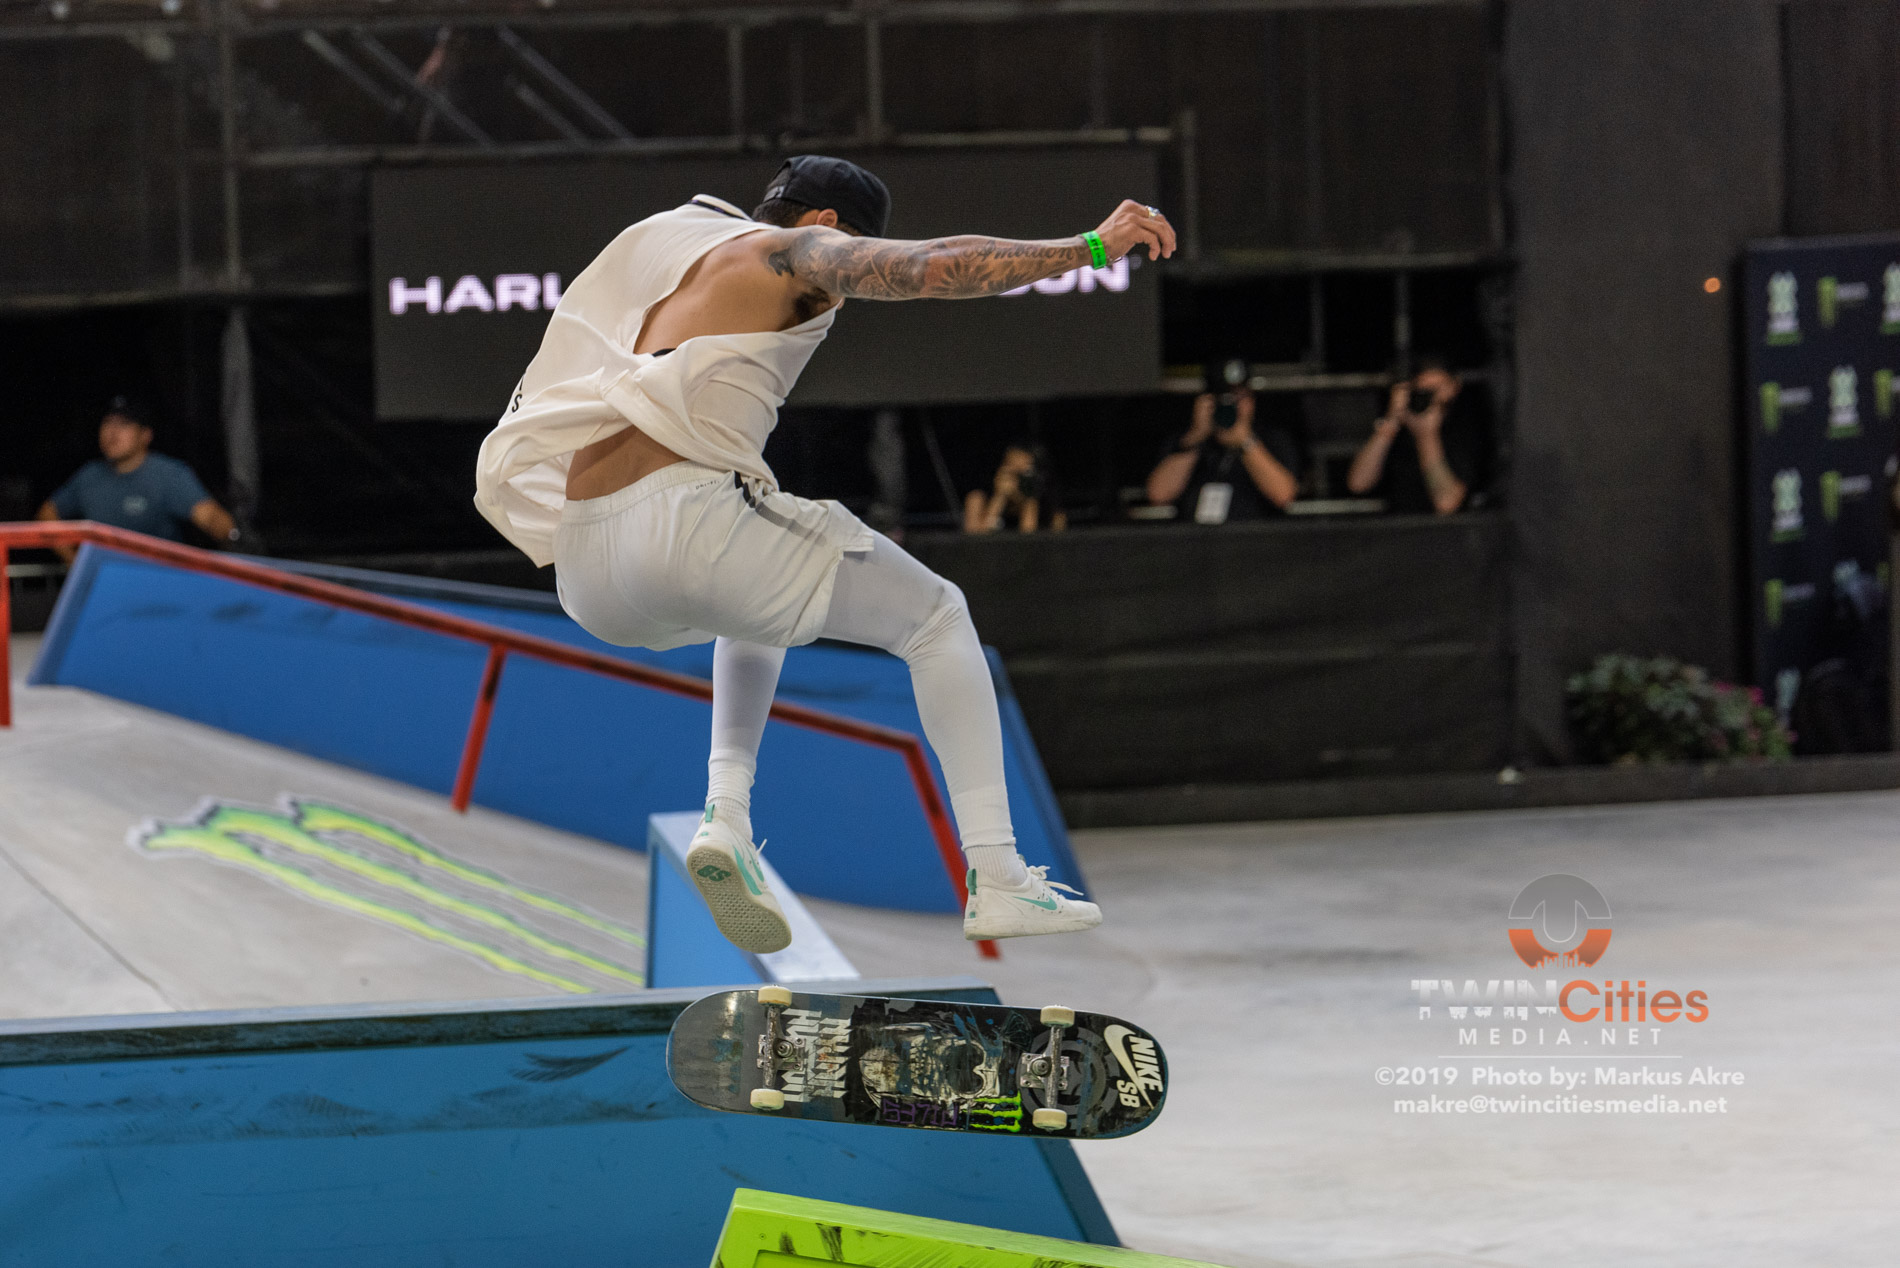 2019-X-Games-Day-4-Skateboard-Street-Best-Trick-9